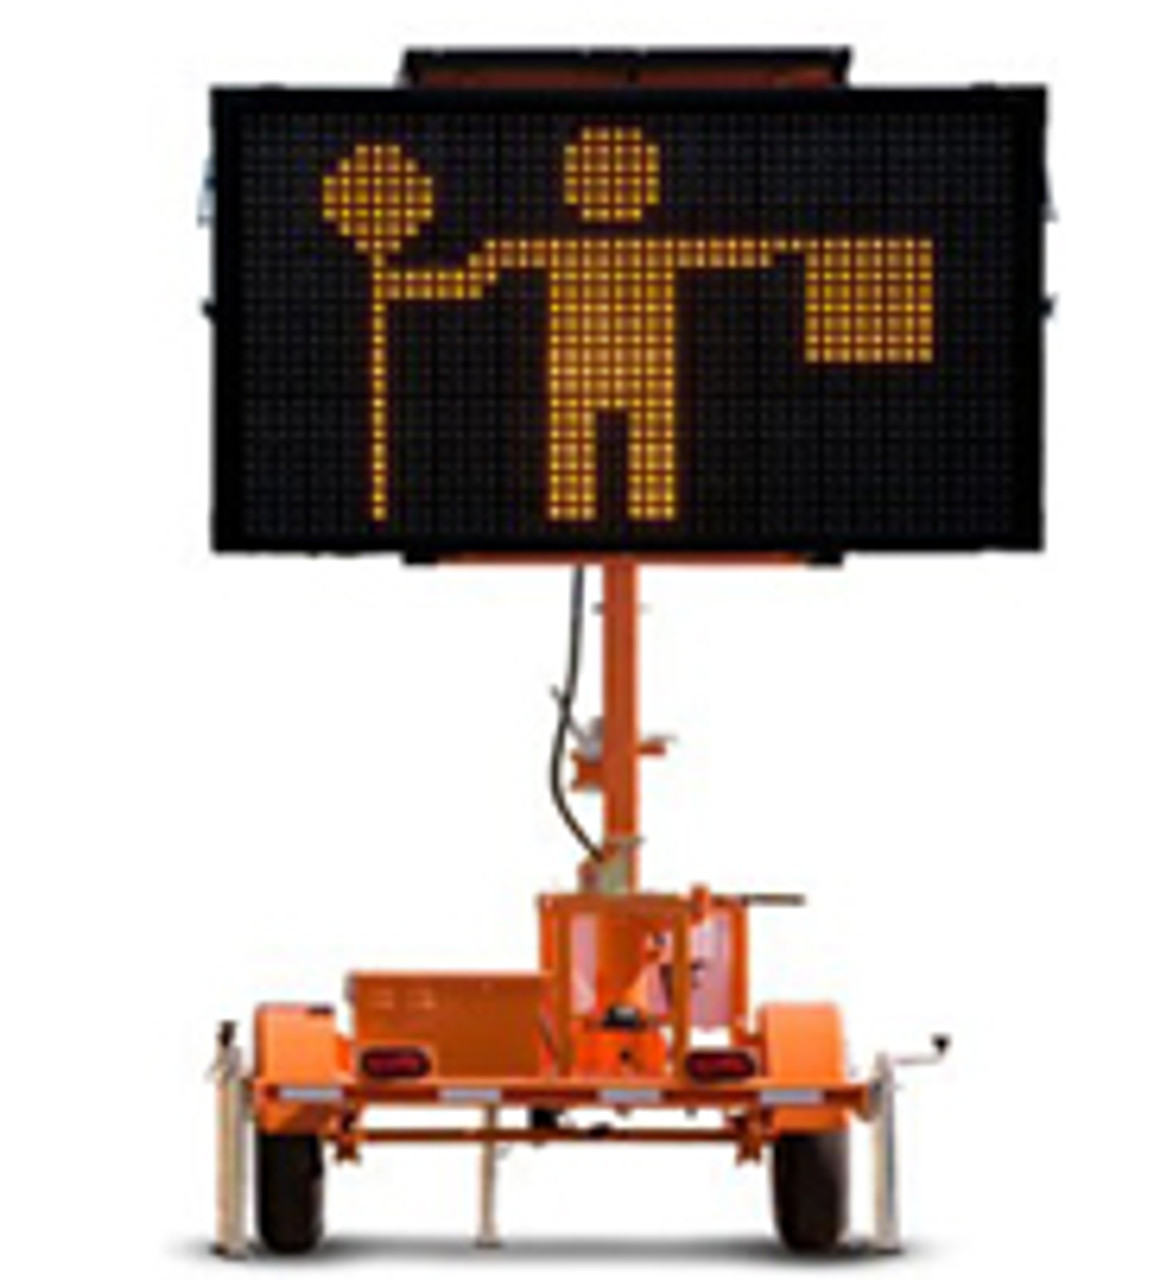 Wanco Mini-Matrix Message Board Sign and Trailer, Full Graphic Display, Solar and Battery Powered WVTM